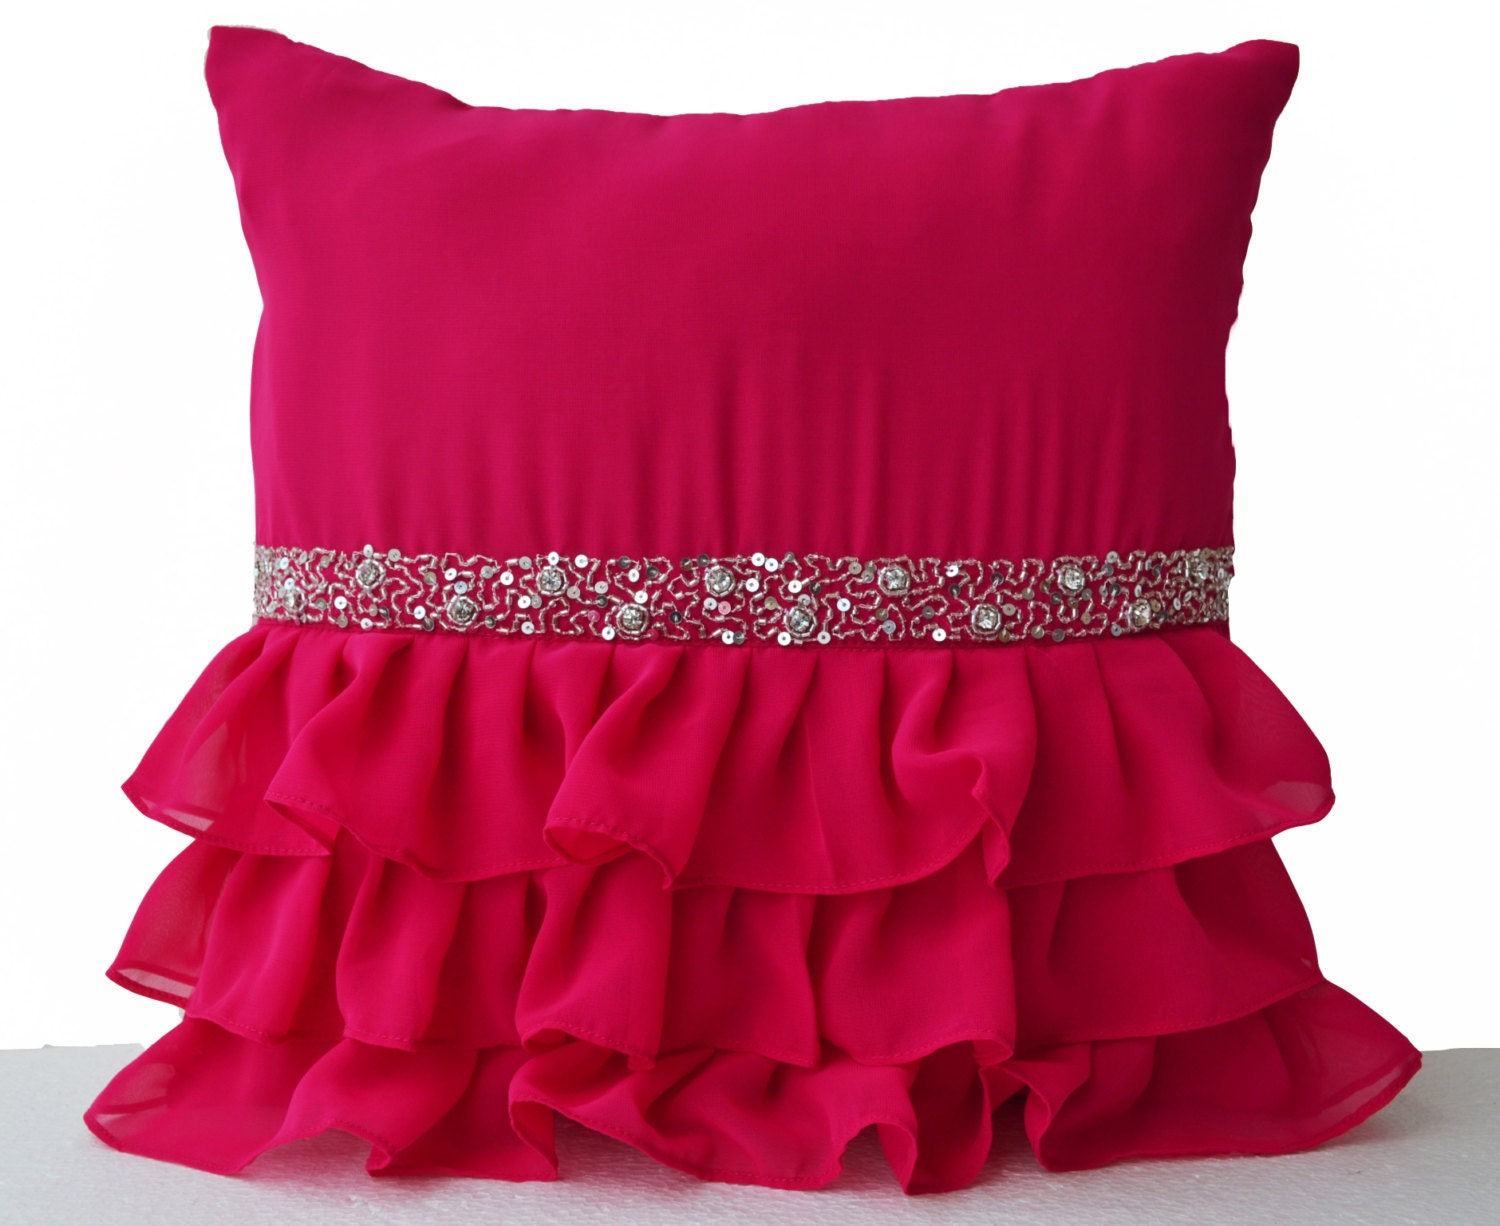 Pink Sequin Decorative Pillows : Cute Hot Pink ruffle sequin throw pillow 16X16 Decorative